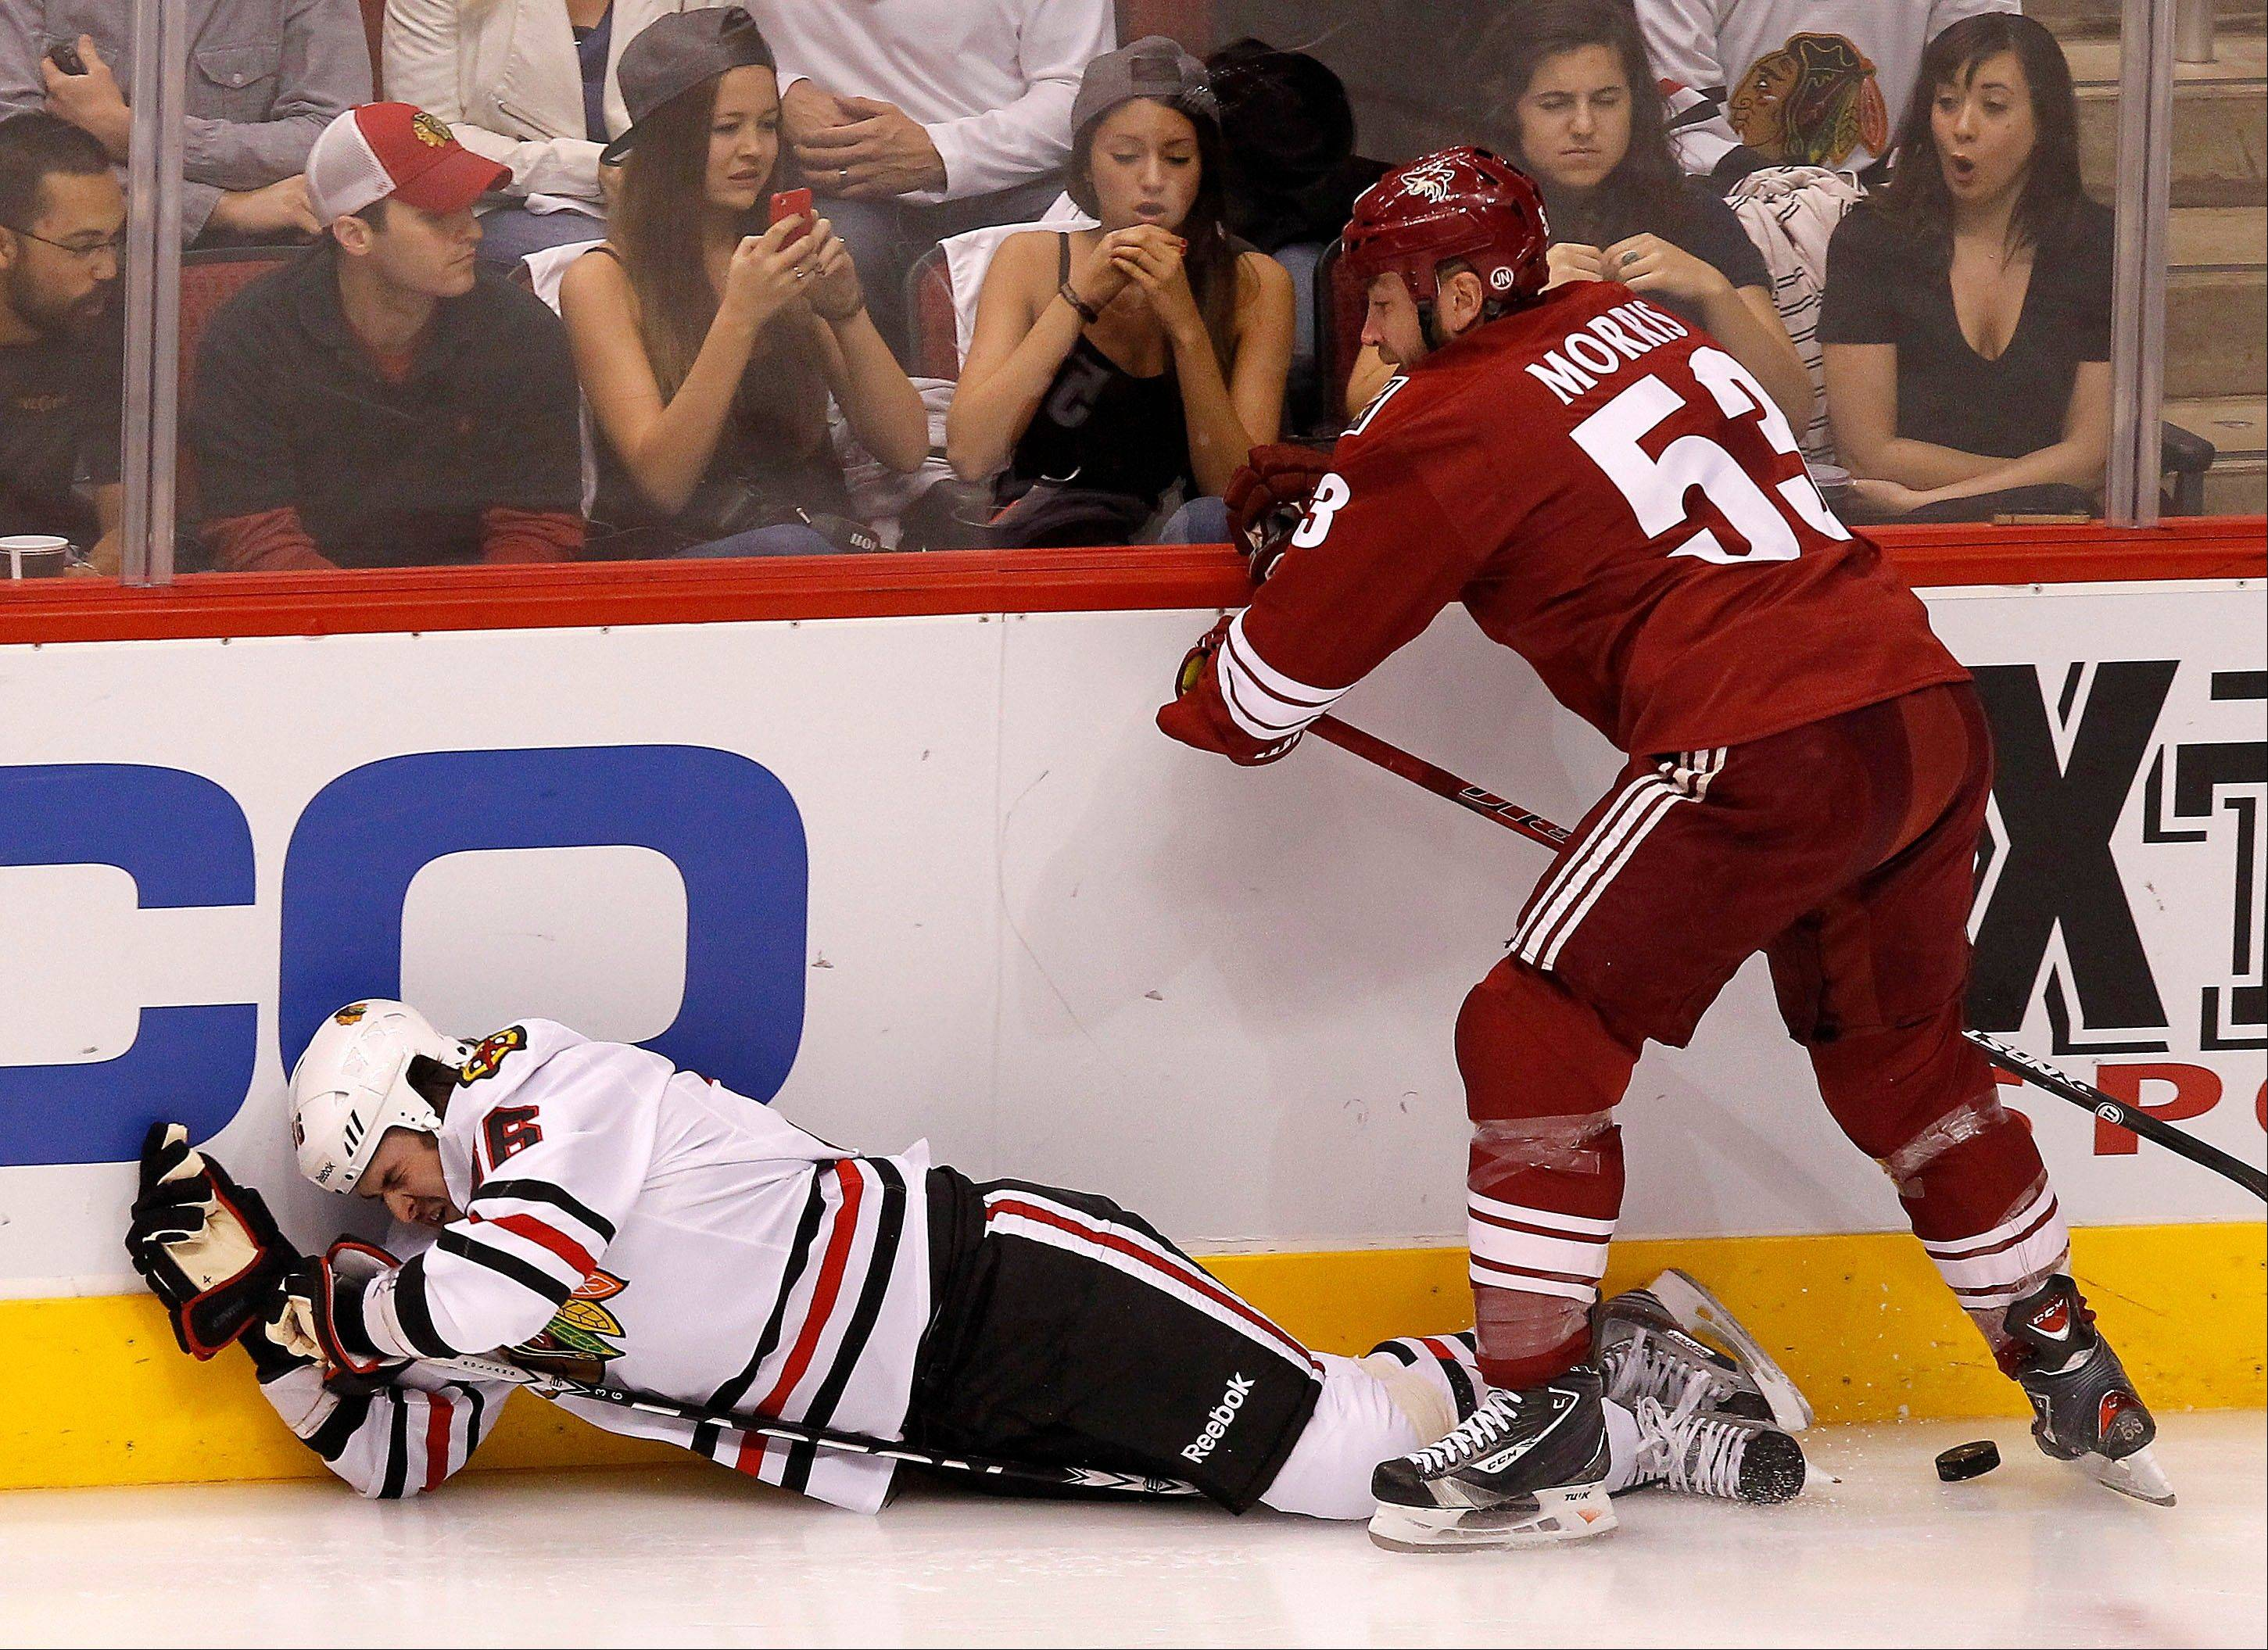 Phoenix Coyotes' Derek Morris, right, checks Chicago Blackhawks' Dave Bolland to the ice during the first period in Game 5 of an NHL hockey Stanley Cup first-round playoff series Saturday, April 21, 2012, in Glendale, Ariz.